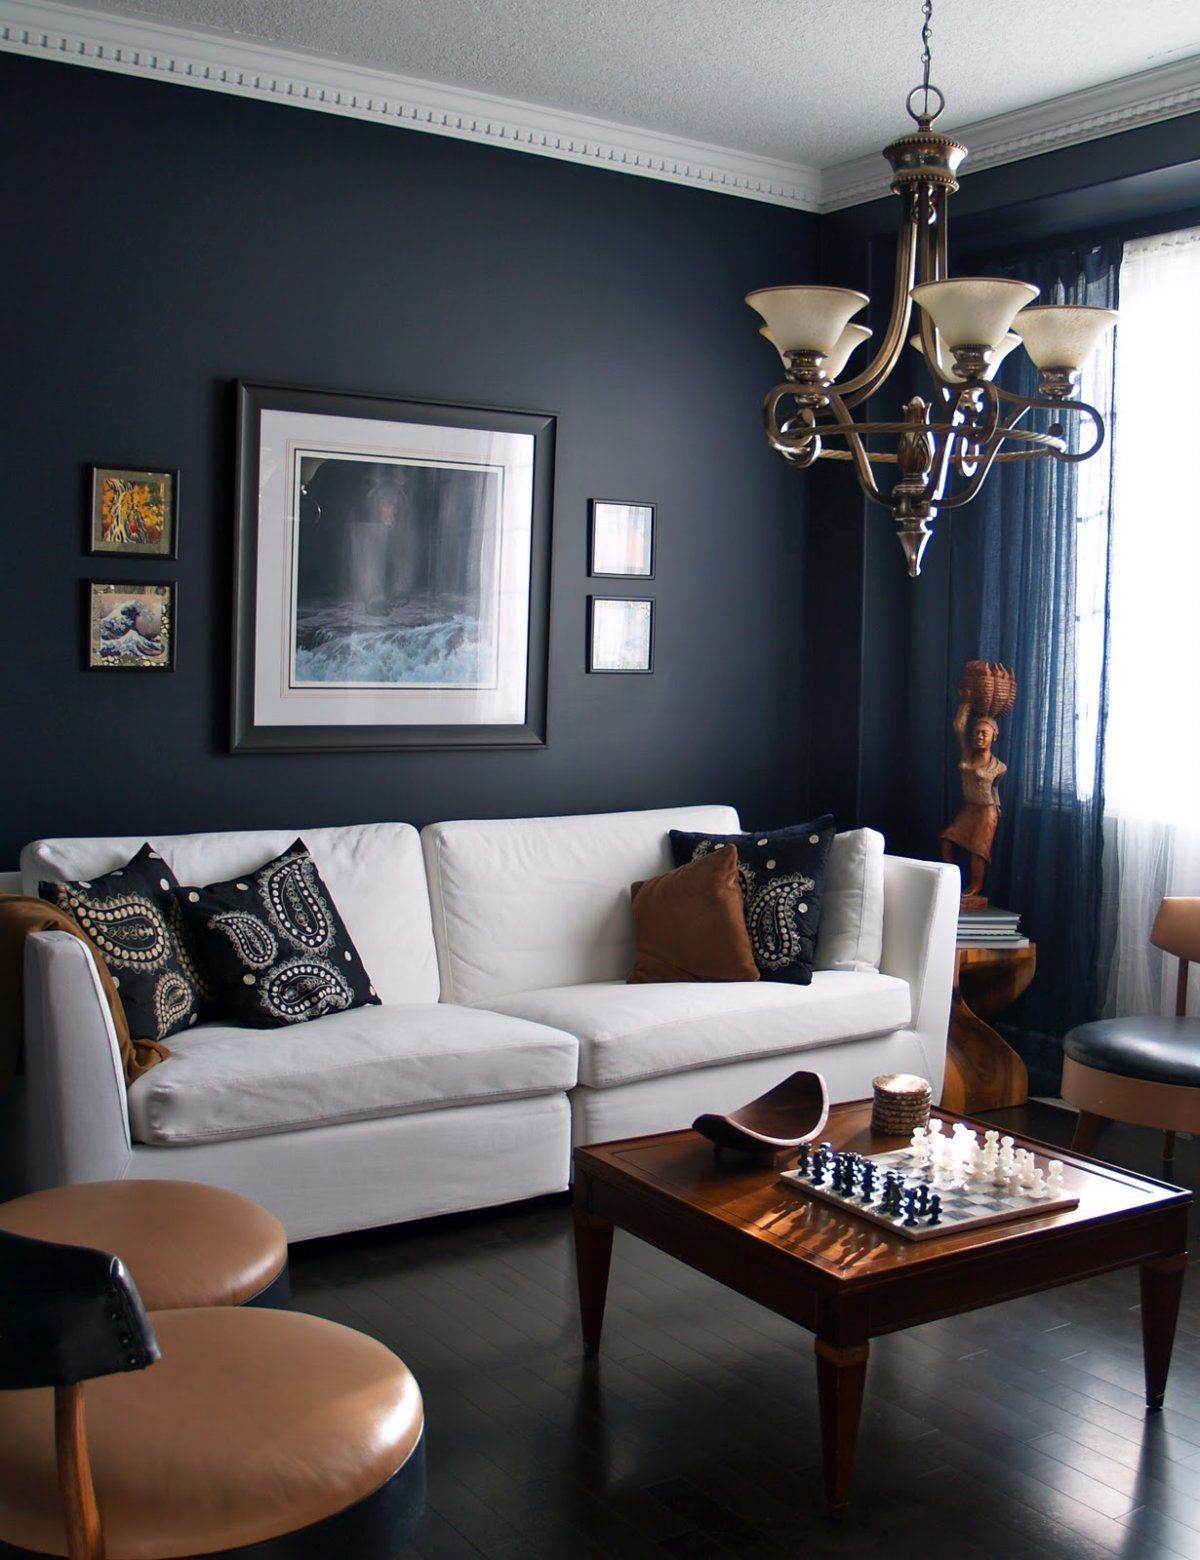 Best 15 Beautiful Dark Blue Wall Design Ideas Navy Blue Walls 400 x 300